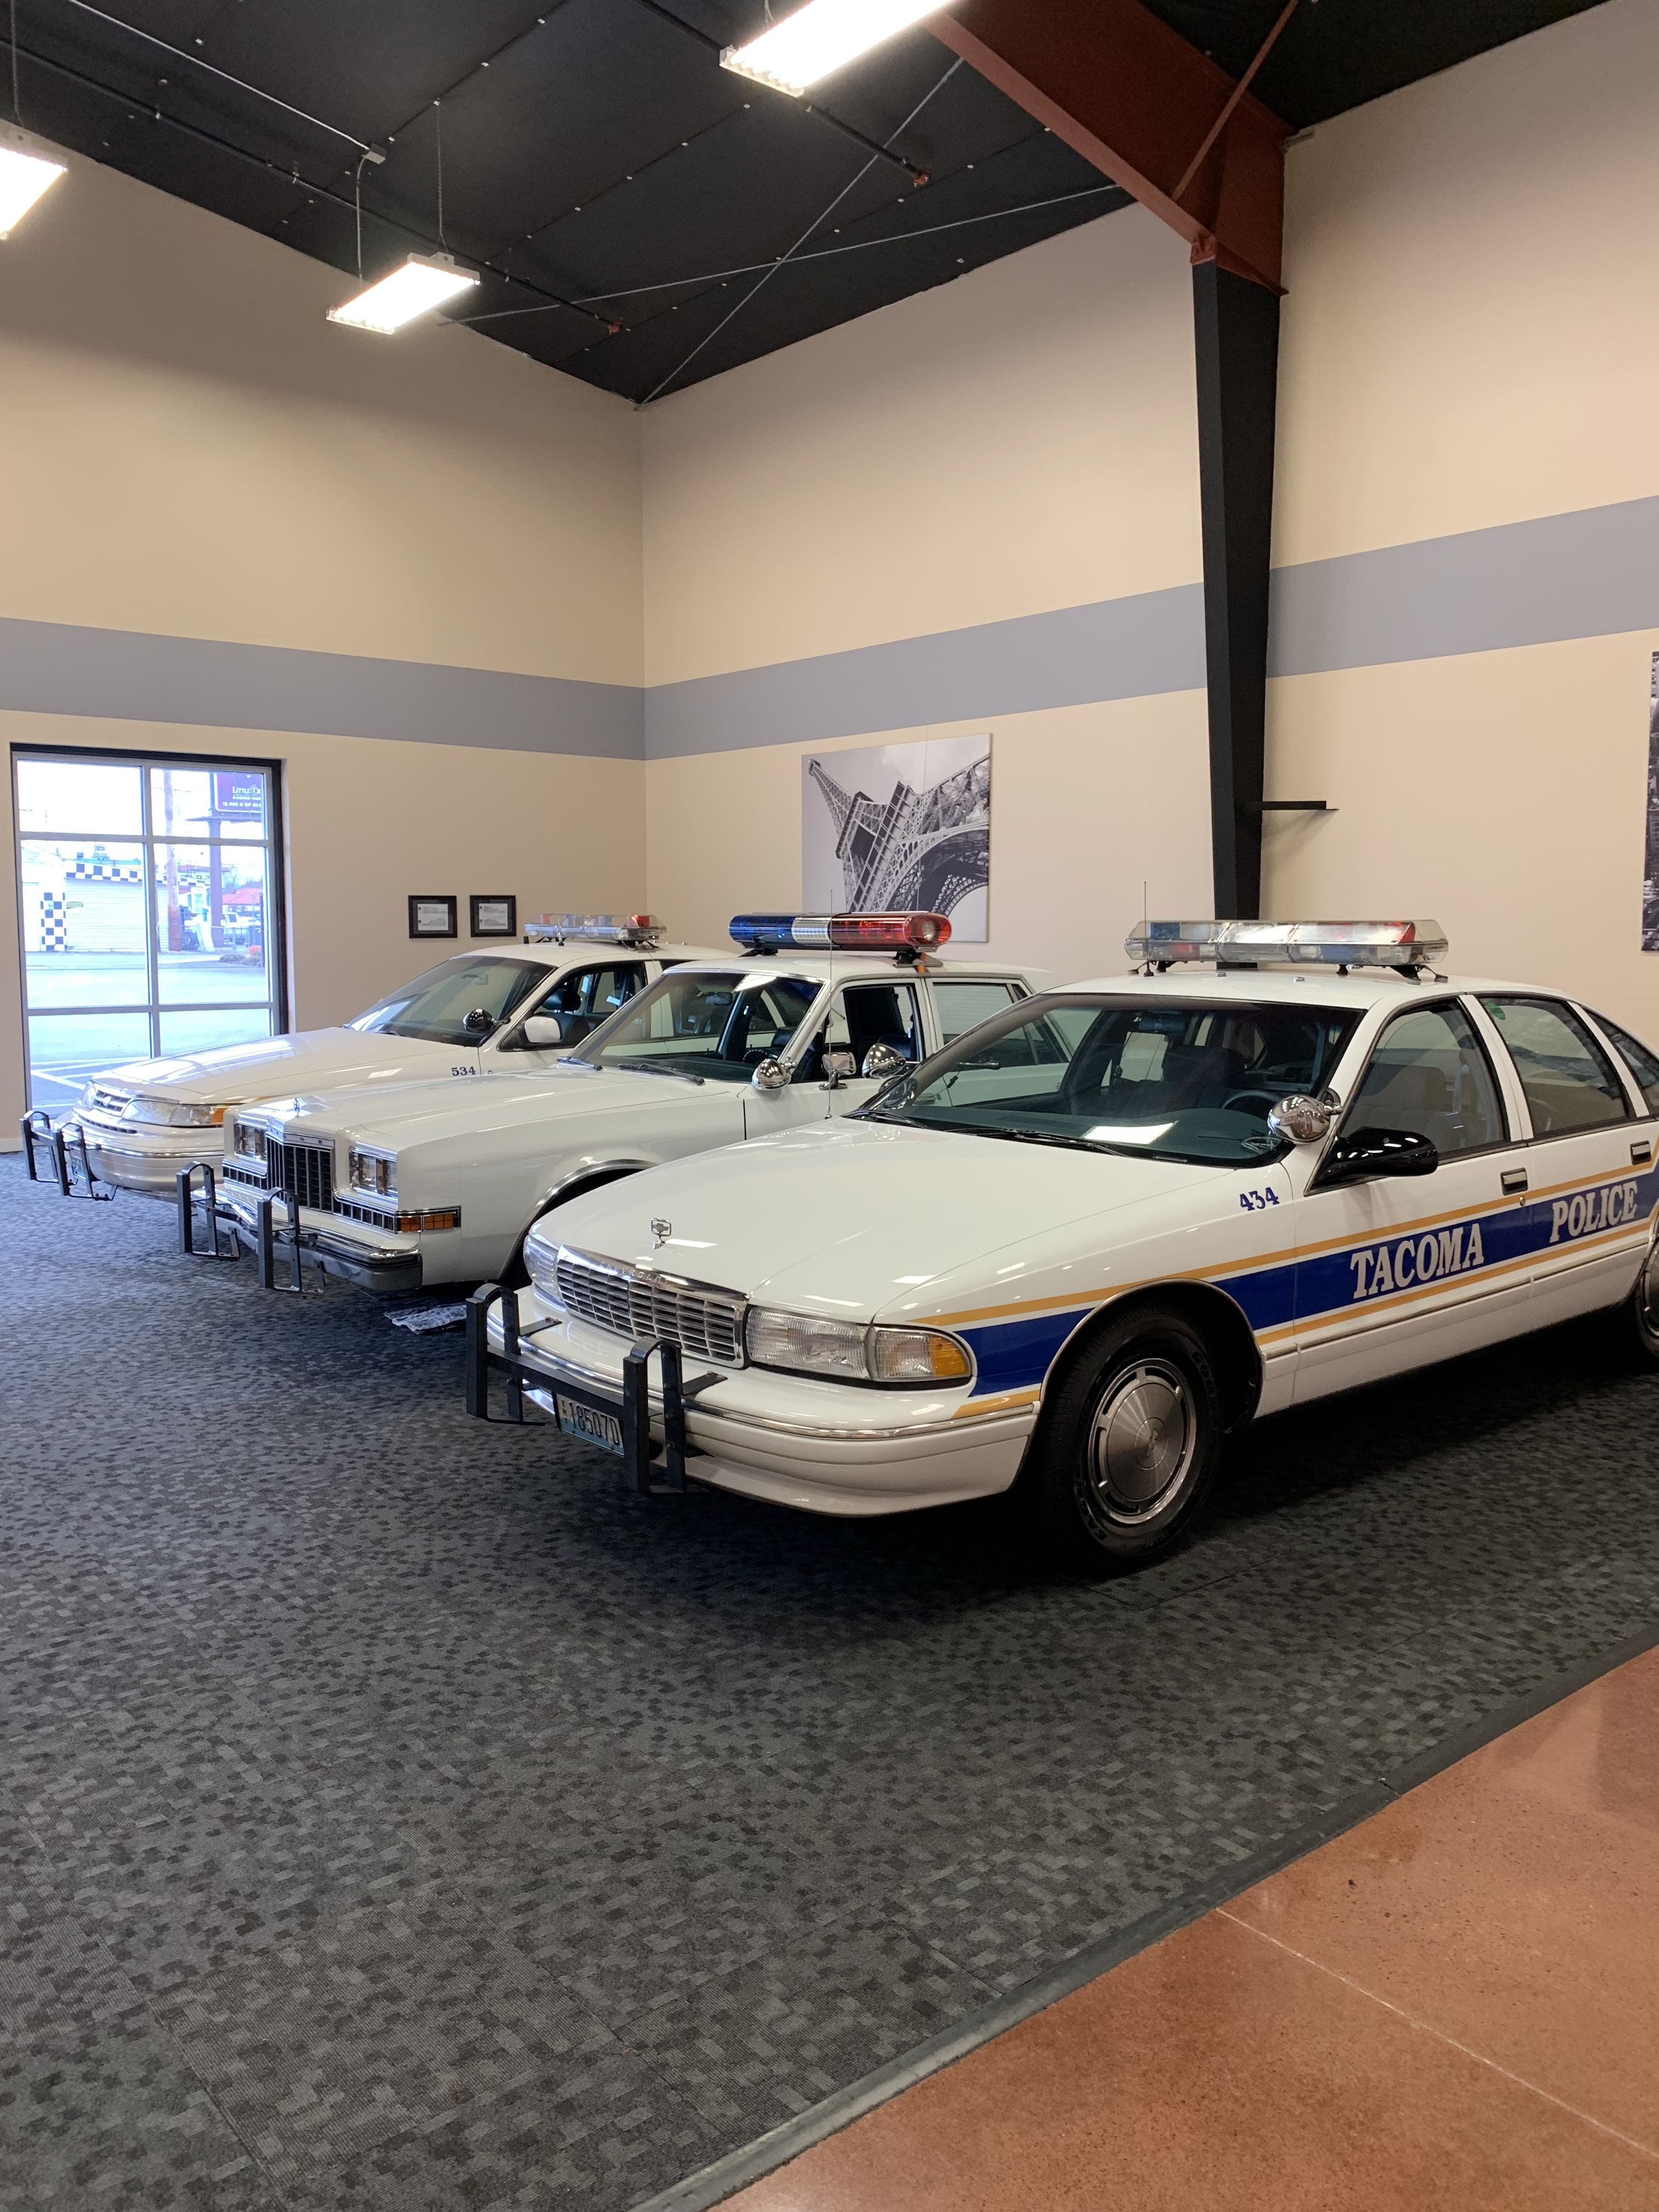 Wa Restored Tacoma Pd Units And Dupont Pd Police Cars Emergency Vehicles Old Police Cars